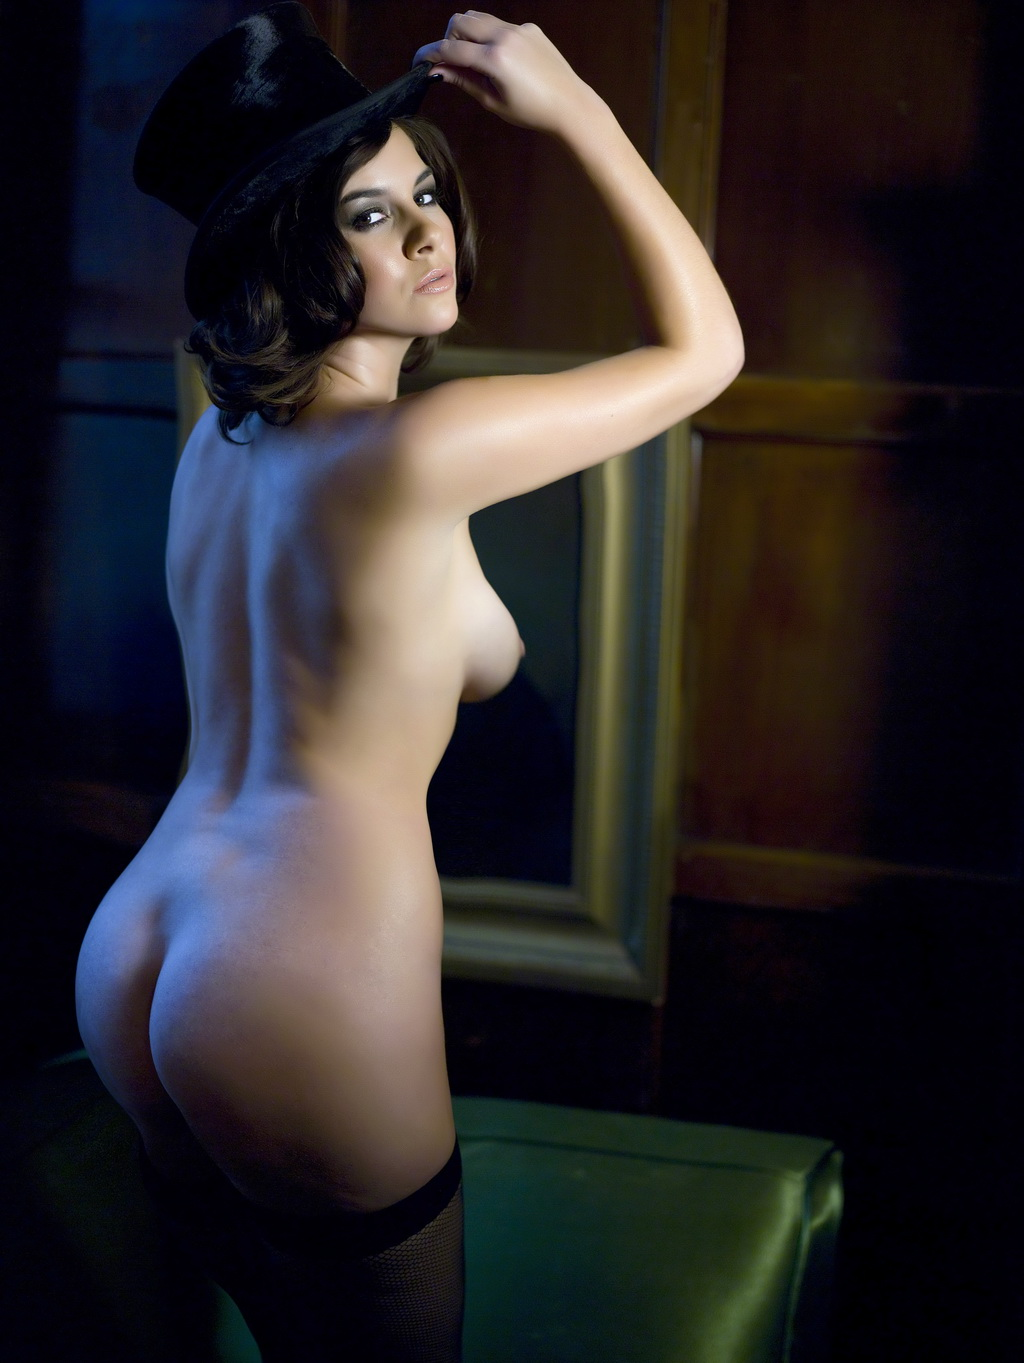 Erika Medina,Poll scarlett johansson vs jennifer aniston Erotic pictures Sexy photos of tina louise,Vanna White Ass